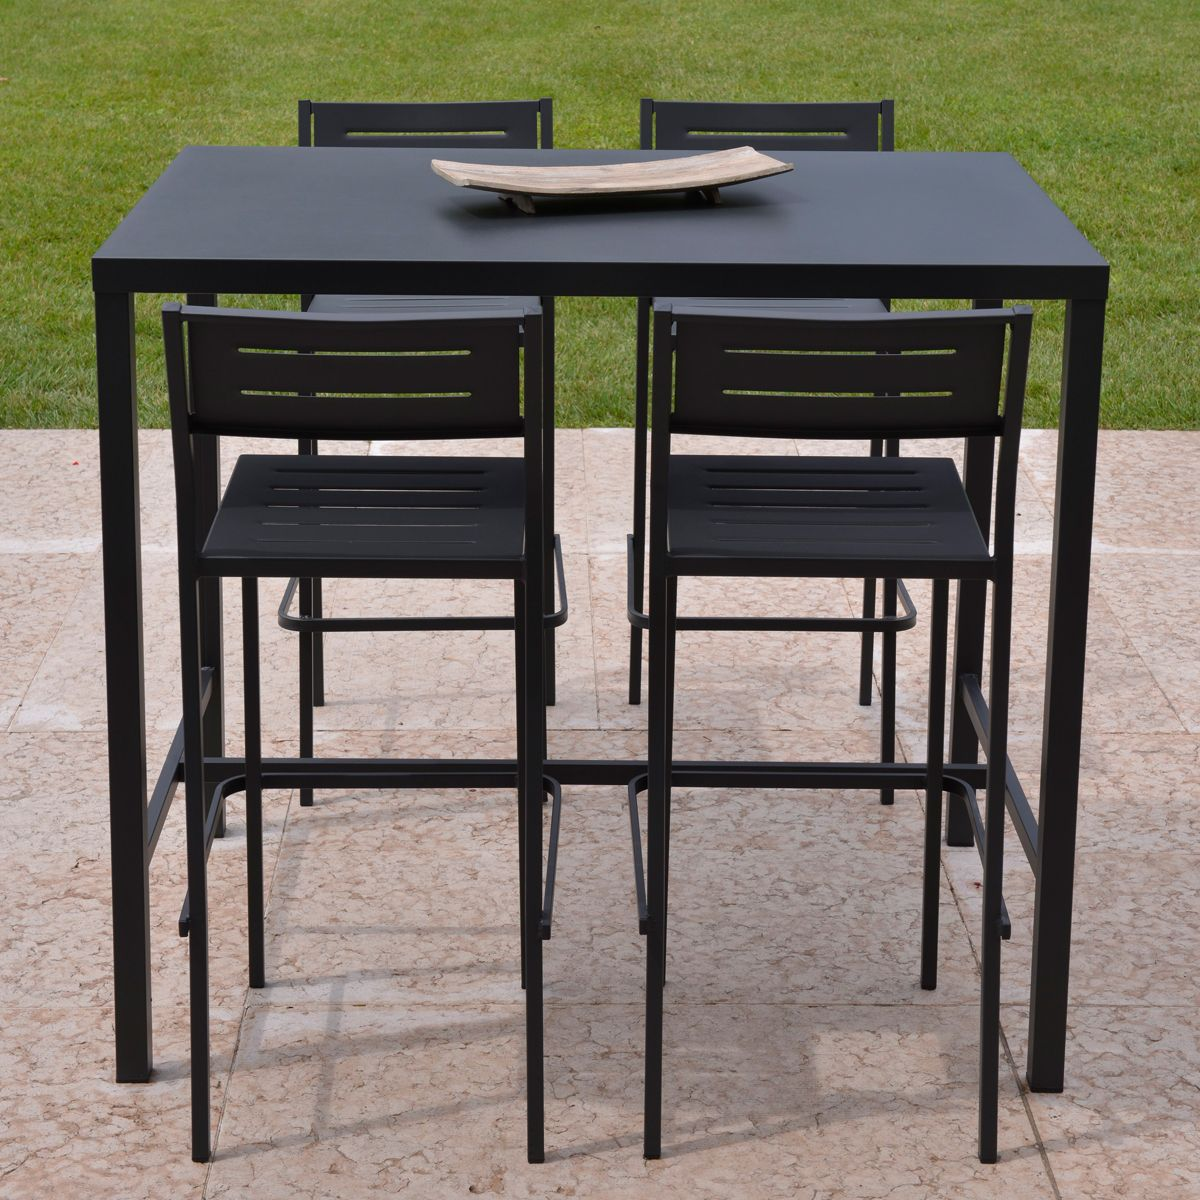 Ensemble de jardin table haute tabouret dorio rd italia for Table jardin design